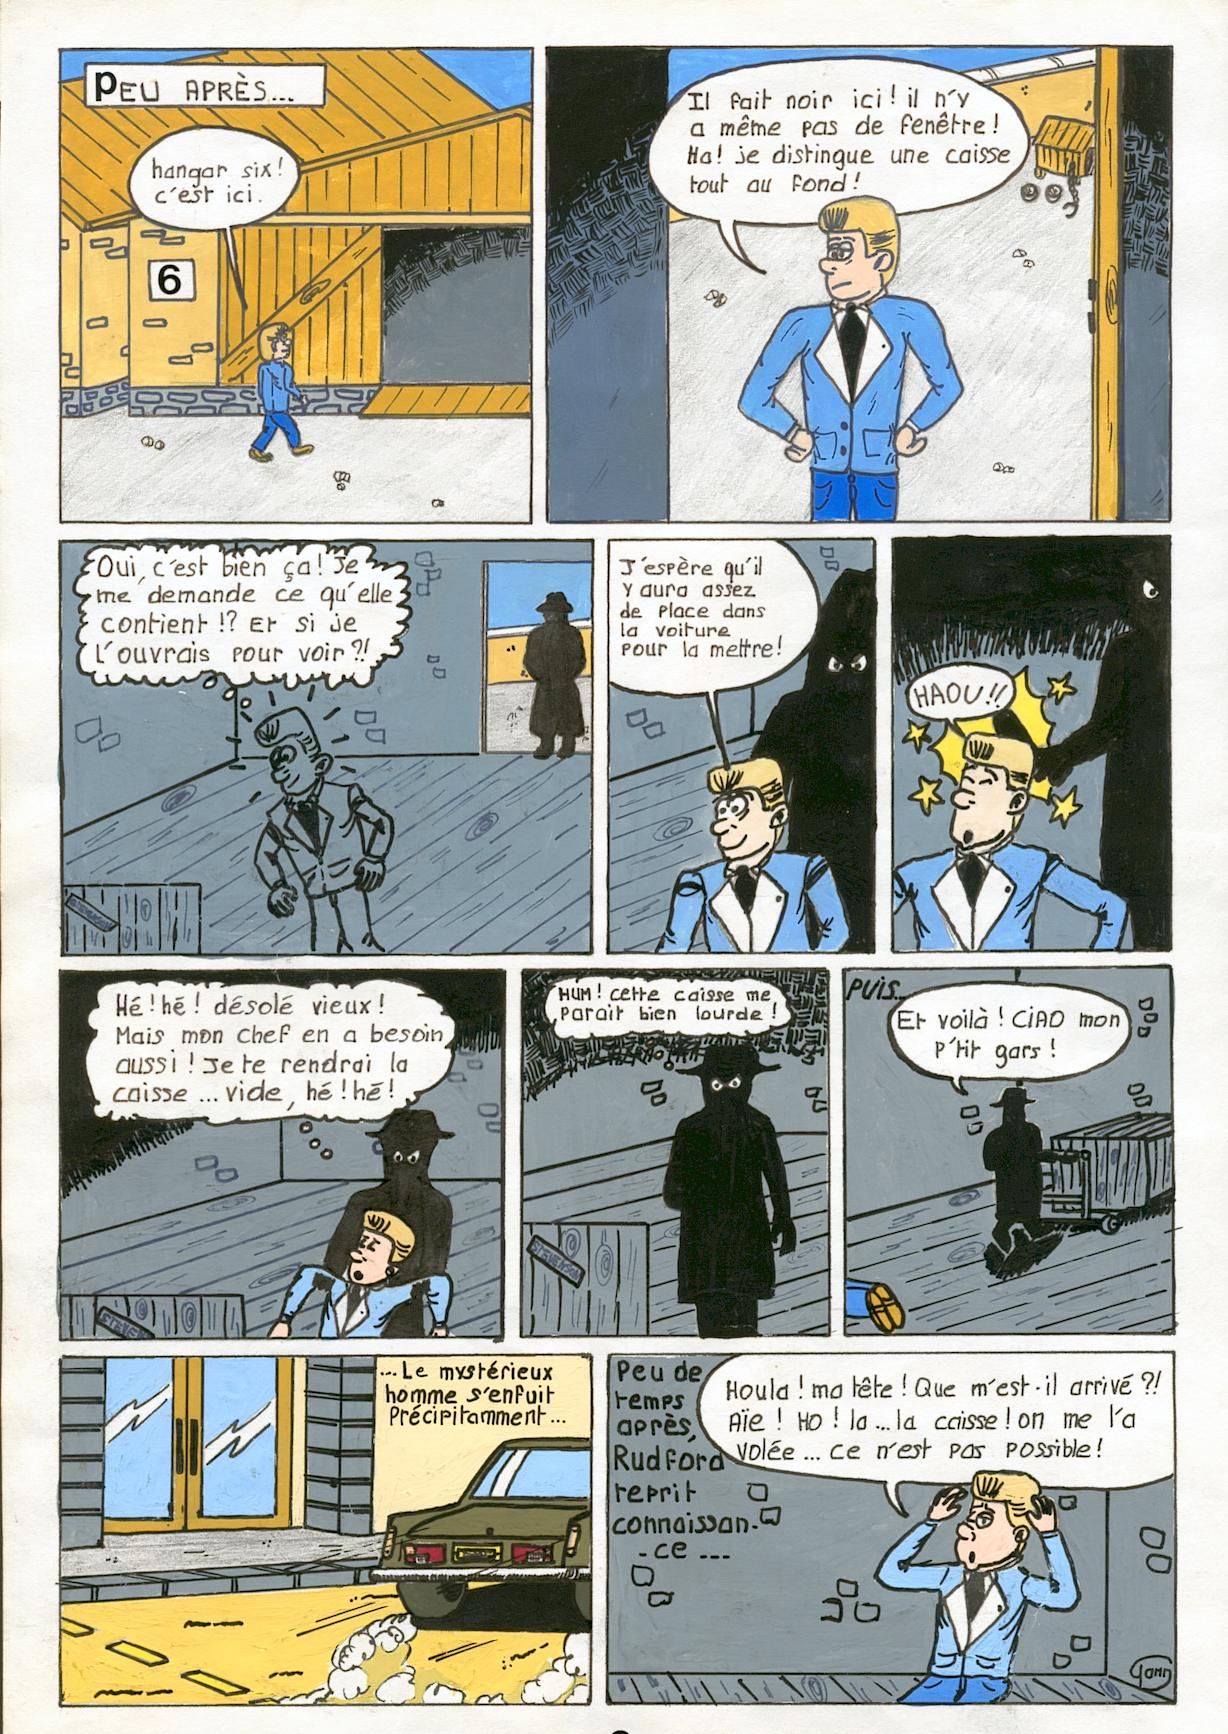 BD 8 page 6